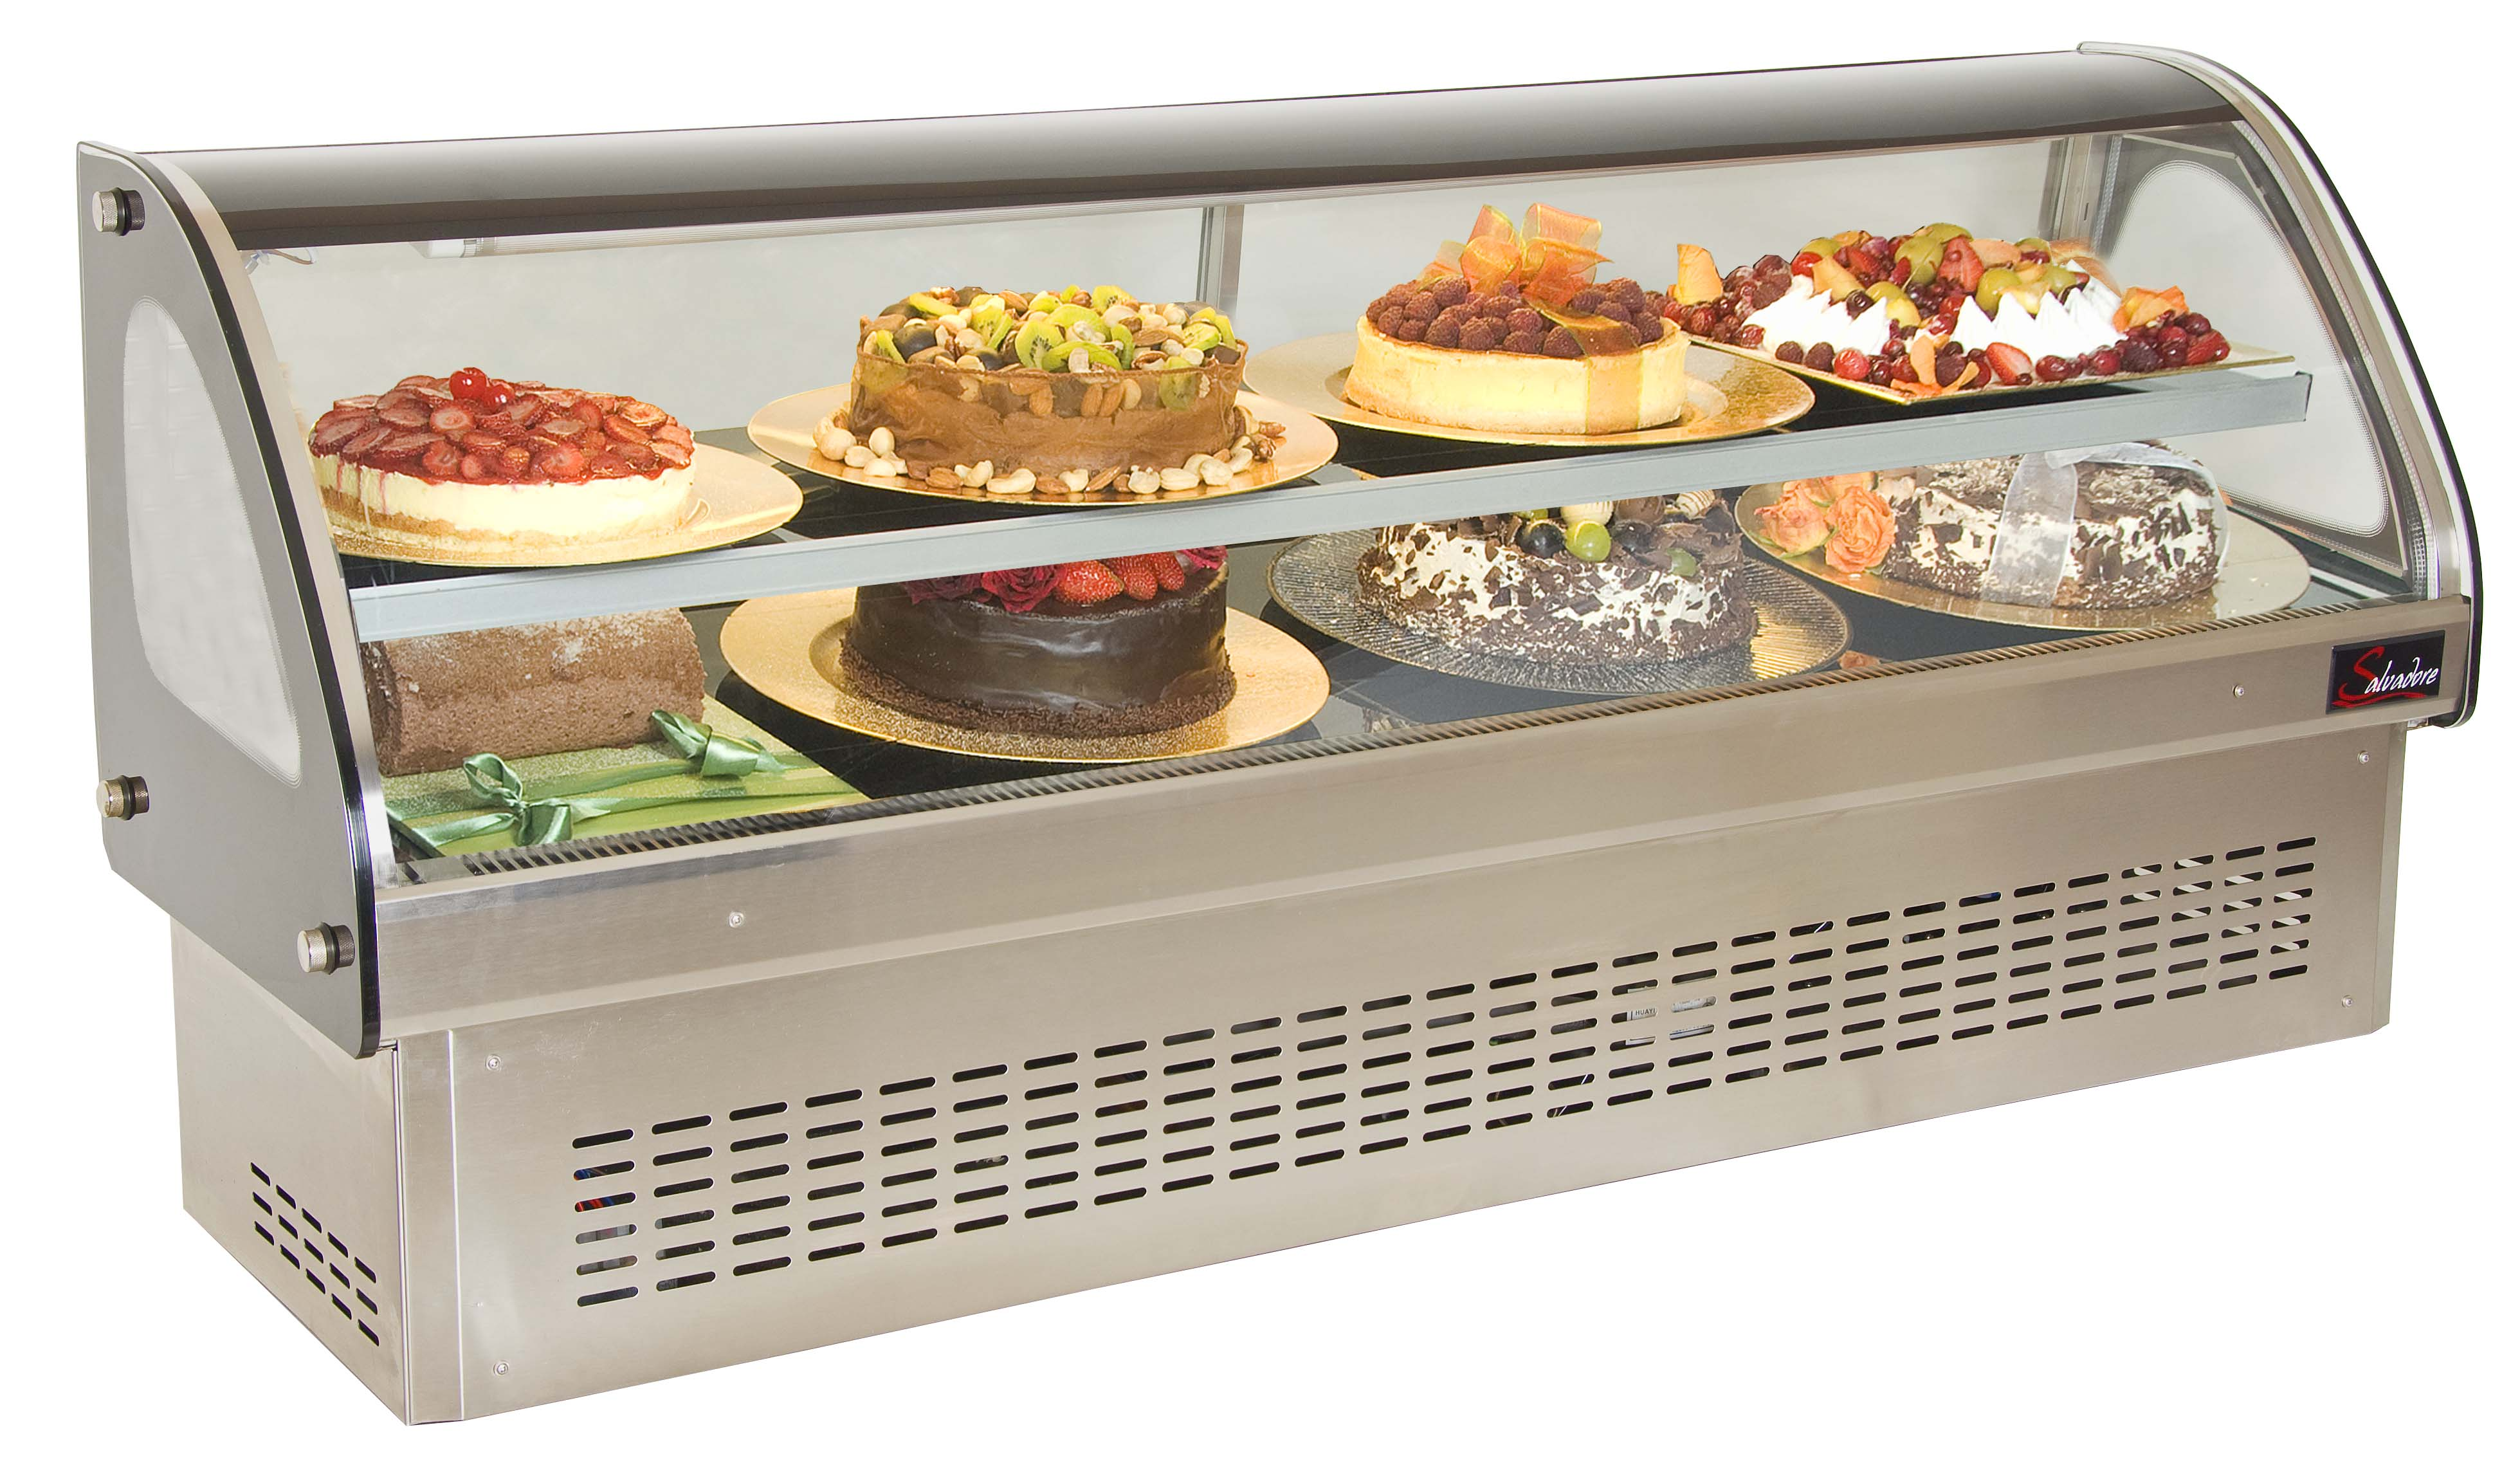 DISPLAY UNIT FRIDGE SALVADORE - C/SUNK AZELIO - 900mm   (DELIVERY IN GAUTENG & WESTERN CAPE ONLY)